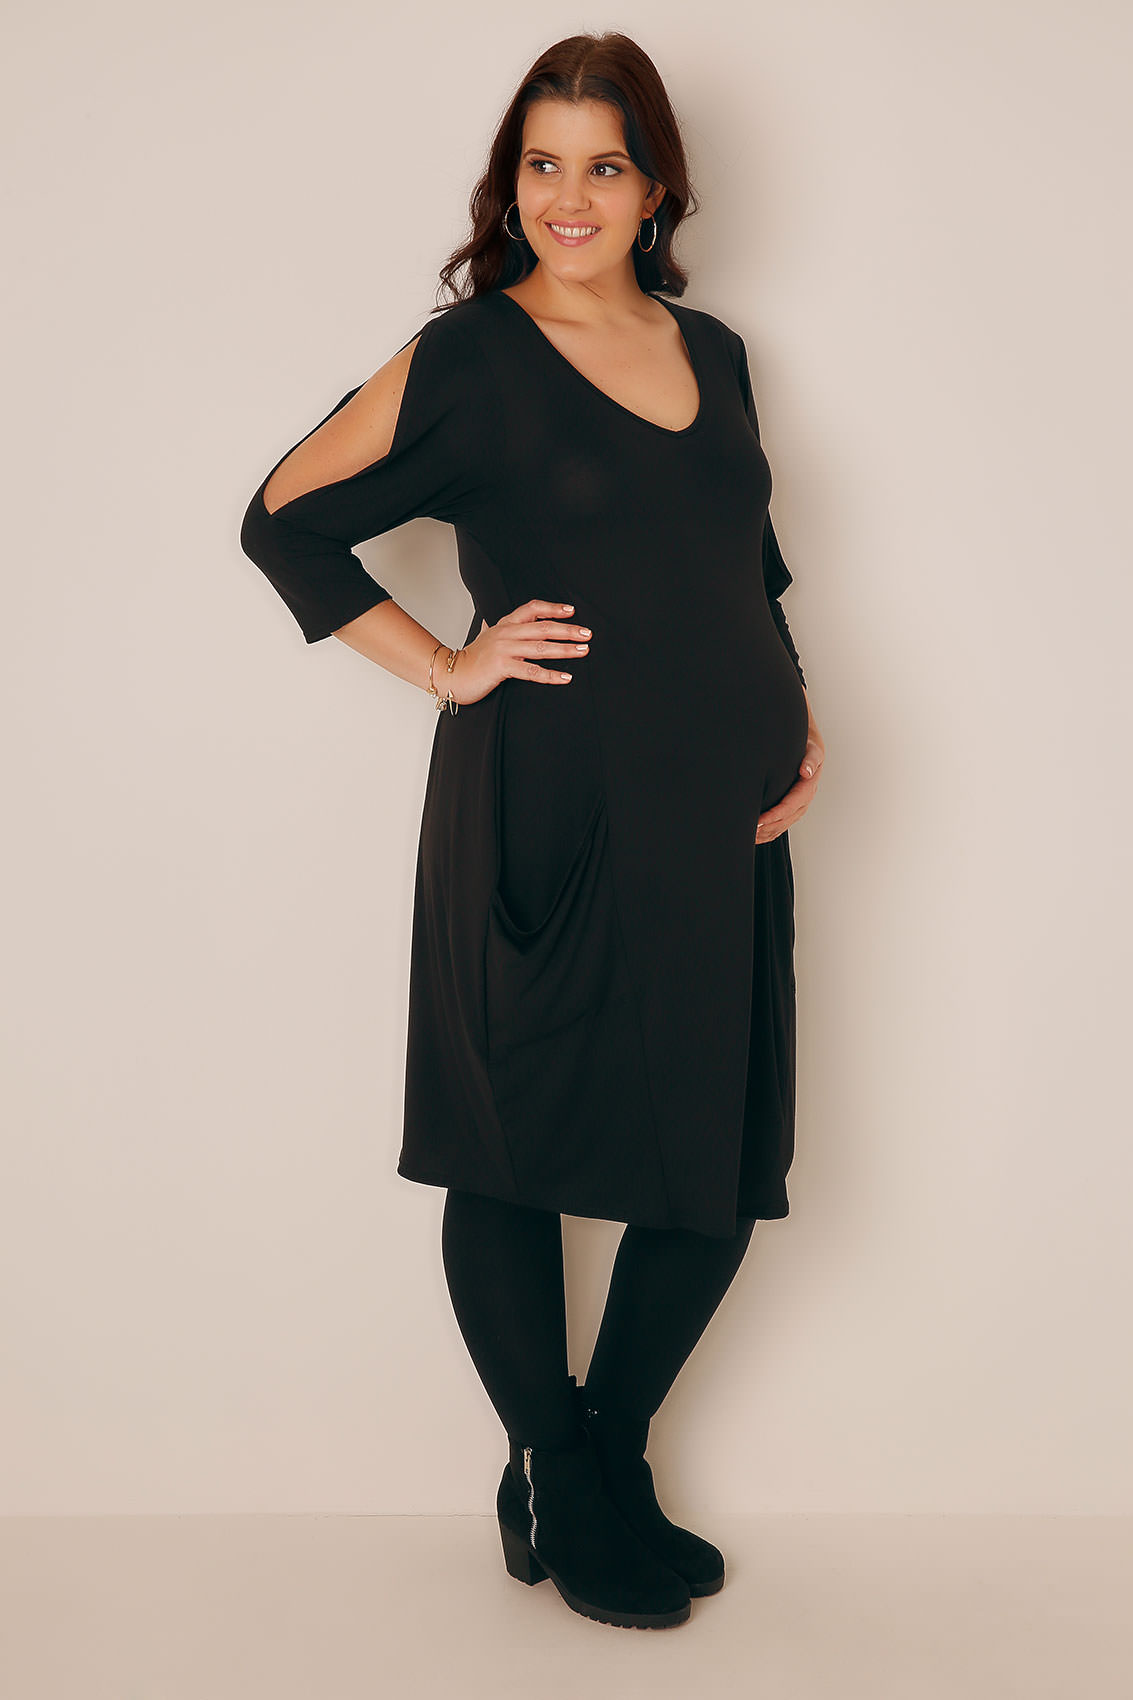 Plus Size Maternity Dresses & Clothes Your pregnancy wardrobe should consist of pieces that look great on your ever-changing figure. Explore our selection of plus size maternity dresses and clothing for the mom-to-be.